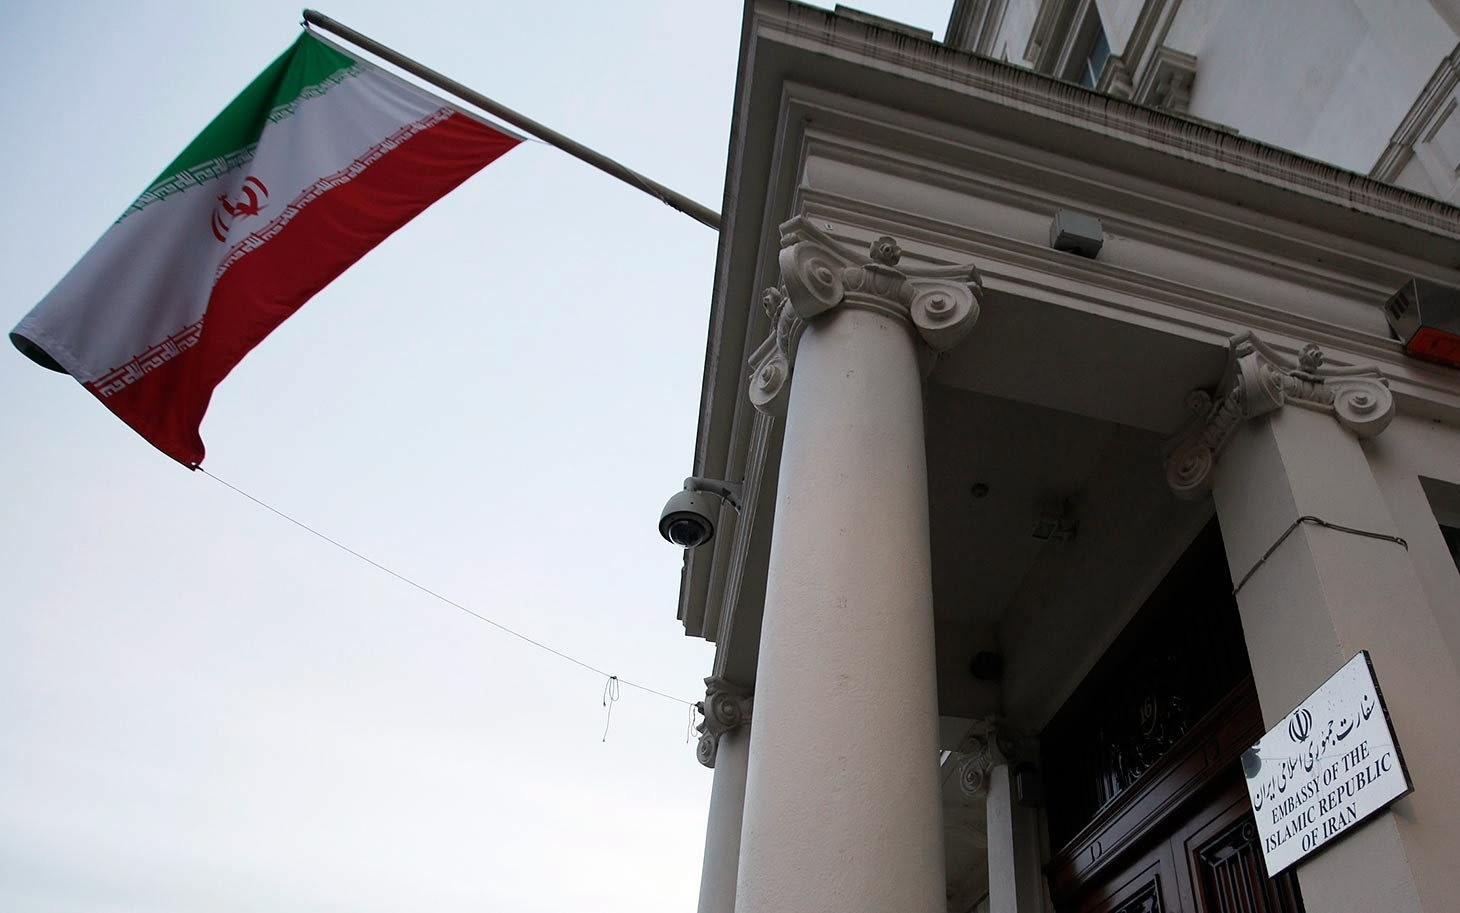 the Iranian flag flies outside the Iranian embassy in London in December 2011. (AP Photo)